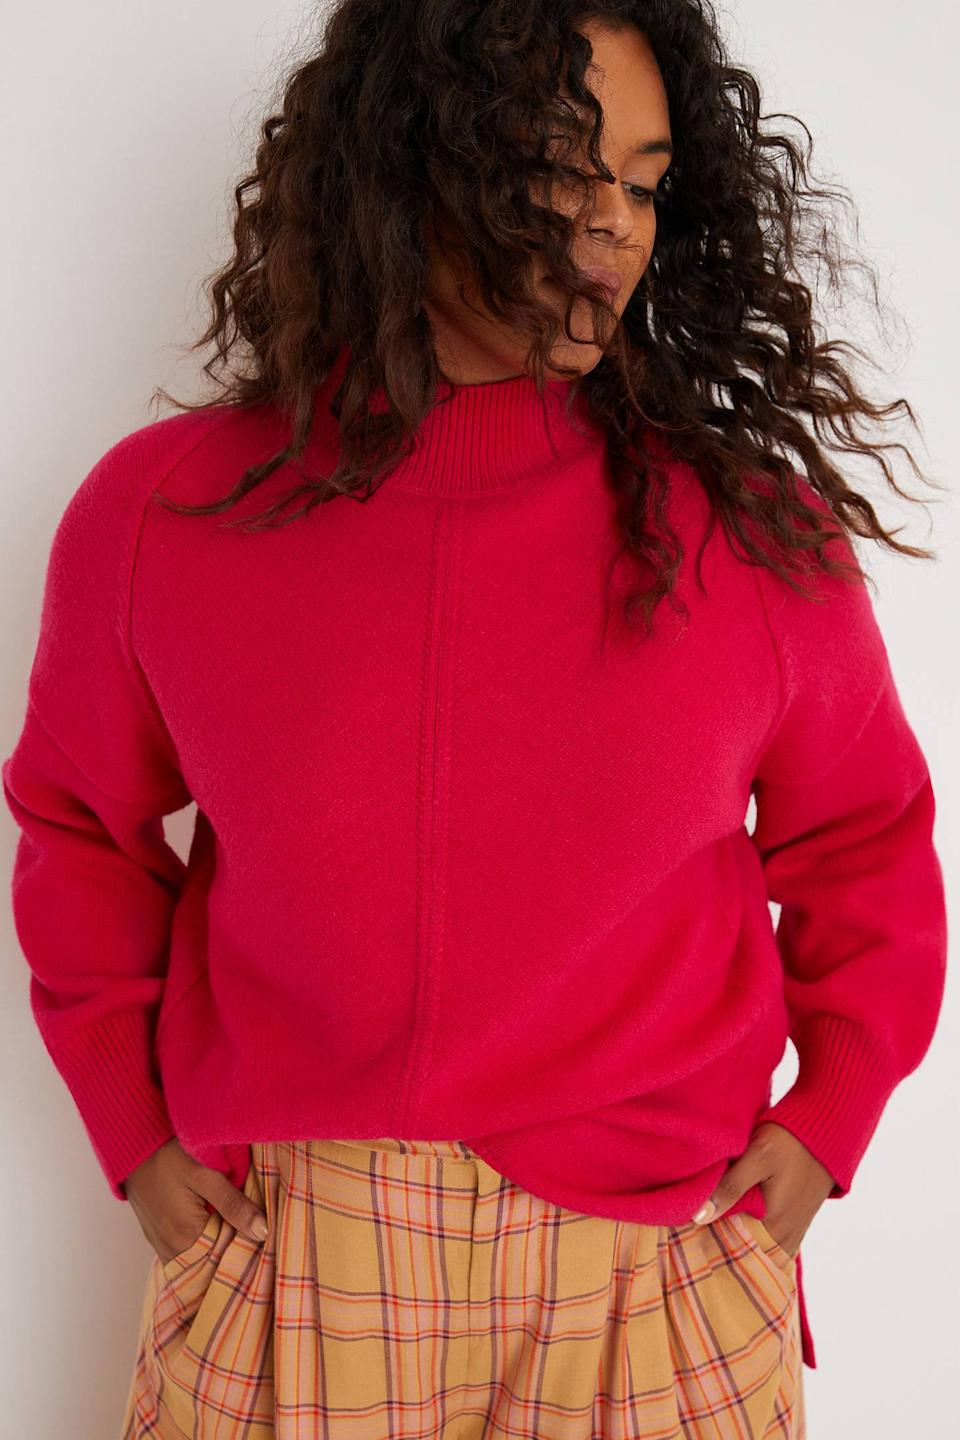 """<h2>Crystal Tunic Sweater<br></h2><br>A can't-miss shade of bougainvillea makes this sleek tunic sweater — rendered in a silky viscose blend — an above-average statement staple. (We're envisioning it over wide-legged sweats for an elegant, comfy-chic ensemble.) With six other colors to choose from and a size range that includes petite and plus, it's truly a fall crowd-pleaser.<br><br><strong>Maeve</strong> Crystal Tunic Sweater, $, available at <a href=""""https://go.skimresources.com/?id=30283X879131&url=https%3A%2F%2Fwww.anthropologie.com%2Fshop%2Fcrystal-tunic-sweater%3Fcategory%3Dtops-sweaters%26color%3D068%26type%3DSTANDARD%26quantity%3D1"""" rel=""""nofollow noopener"""" target=""""_blank"""" data-ylk=""""slk:Anthropologie"""" class=""""link rapid-noclick-resp"""">Anthropologie</a>"""